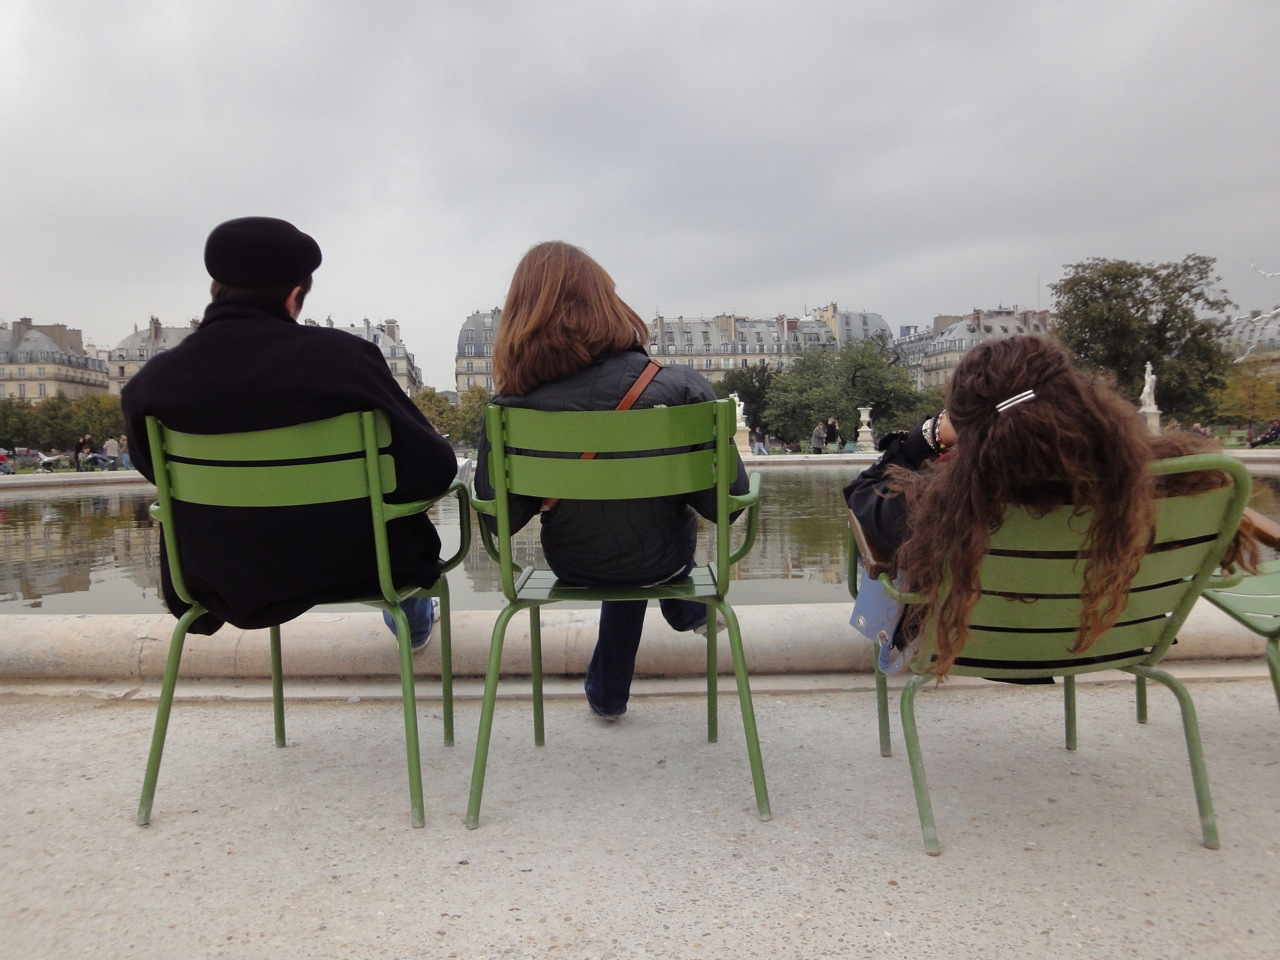 Chillin' at the Louvre